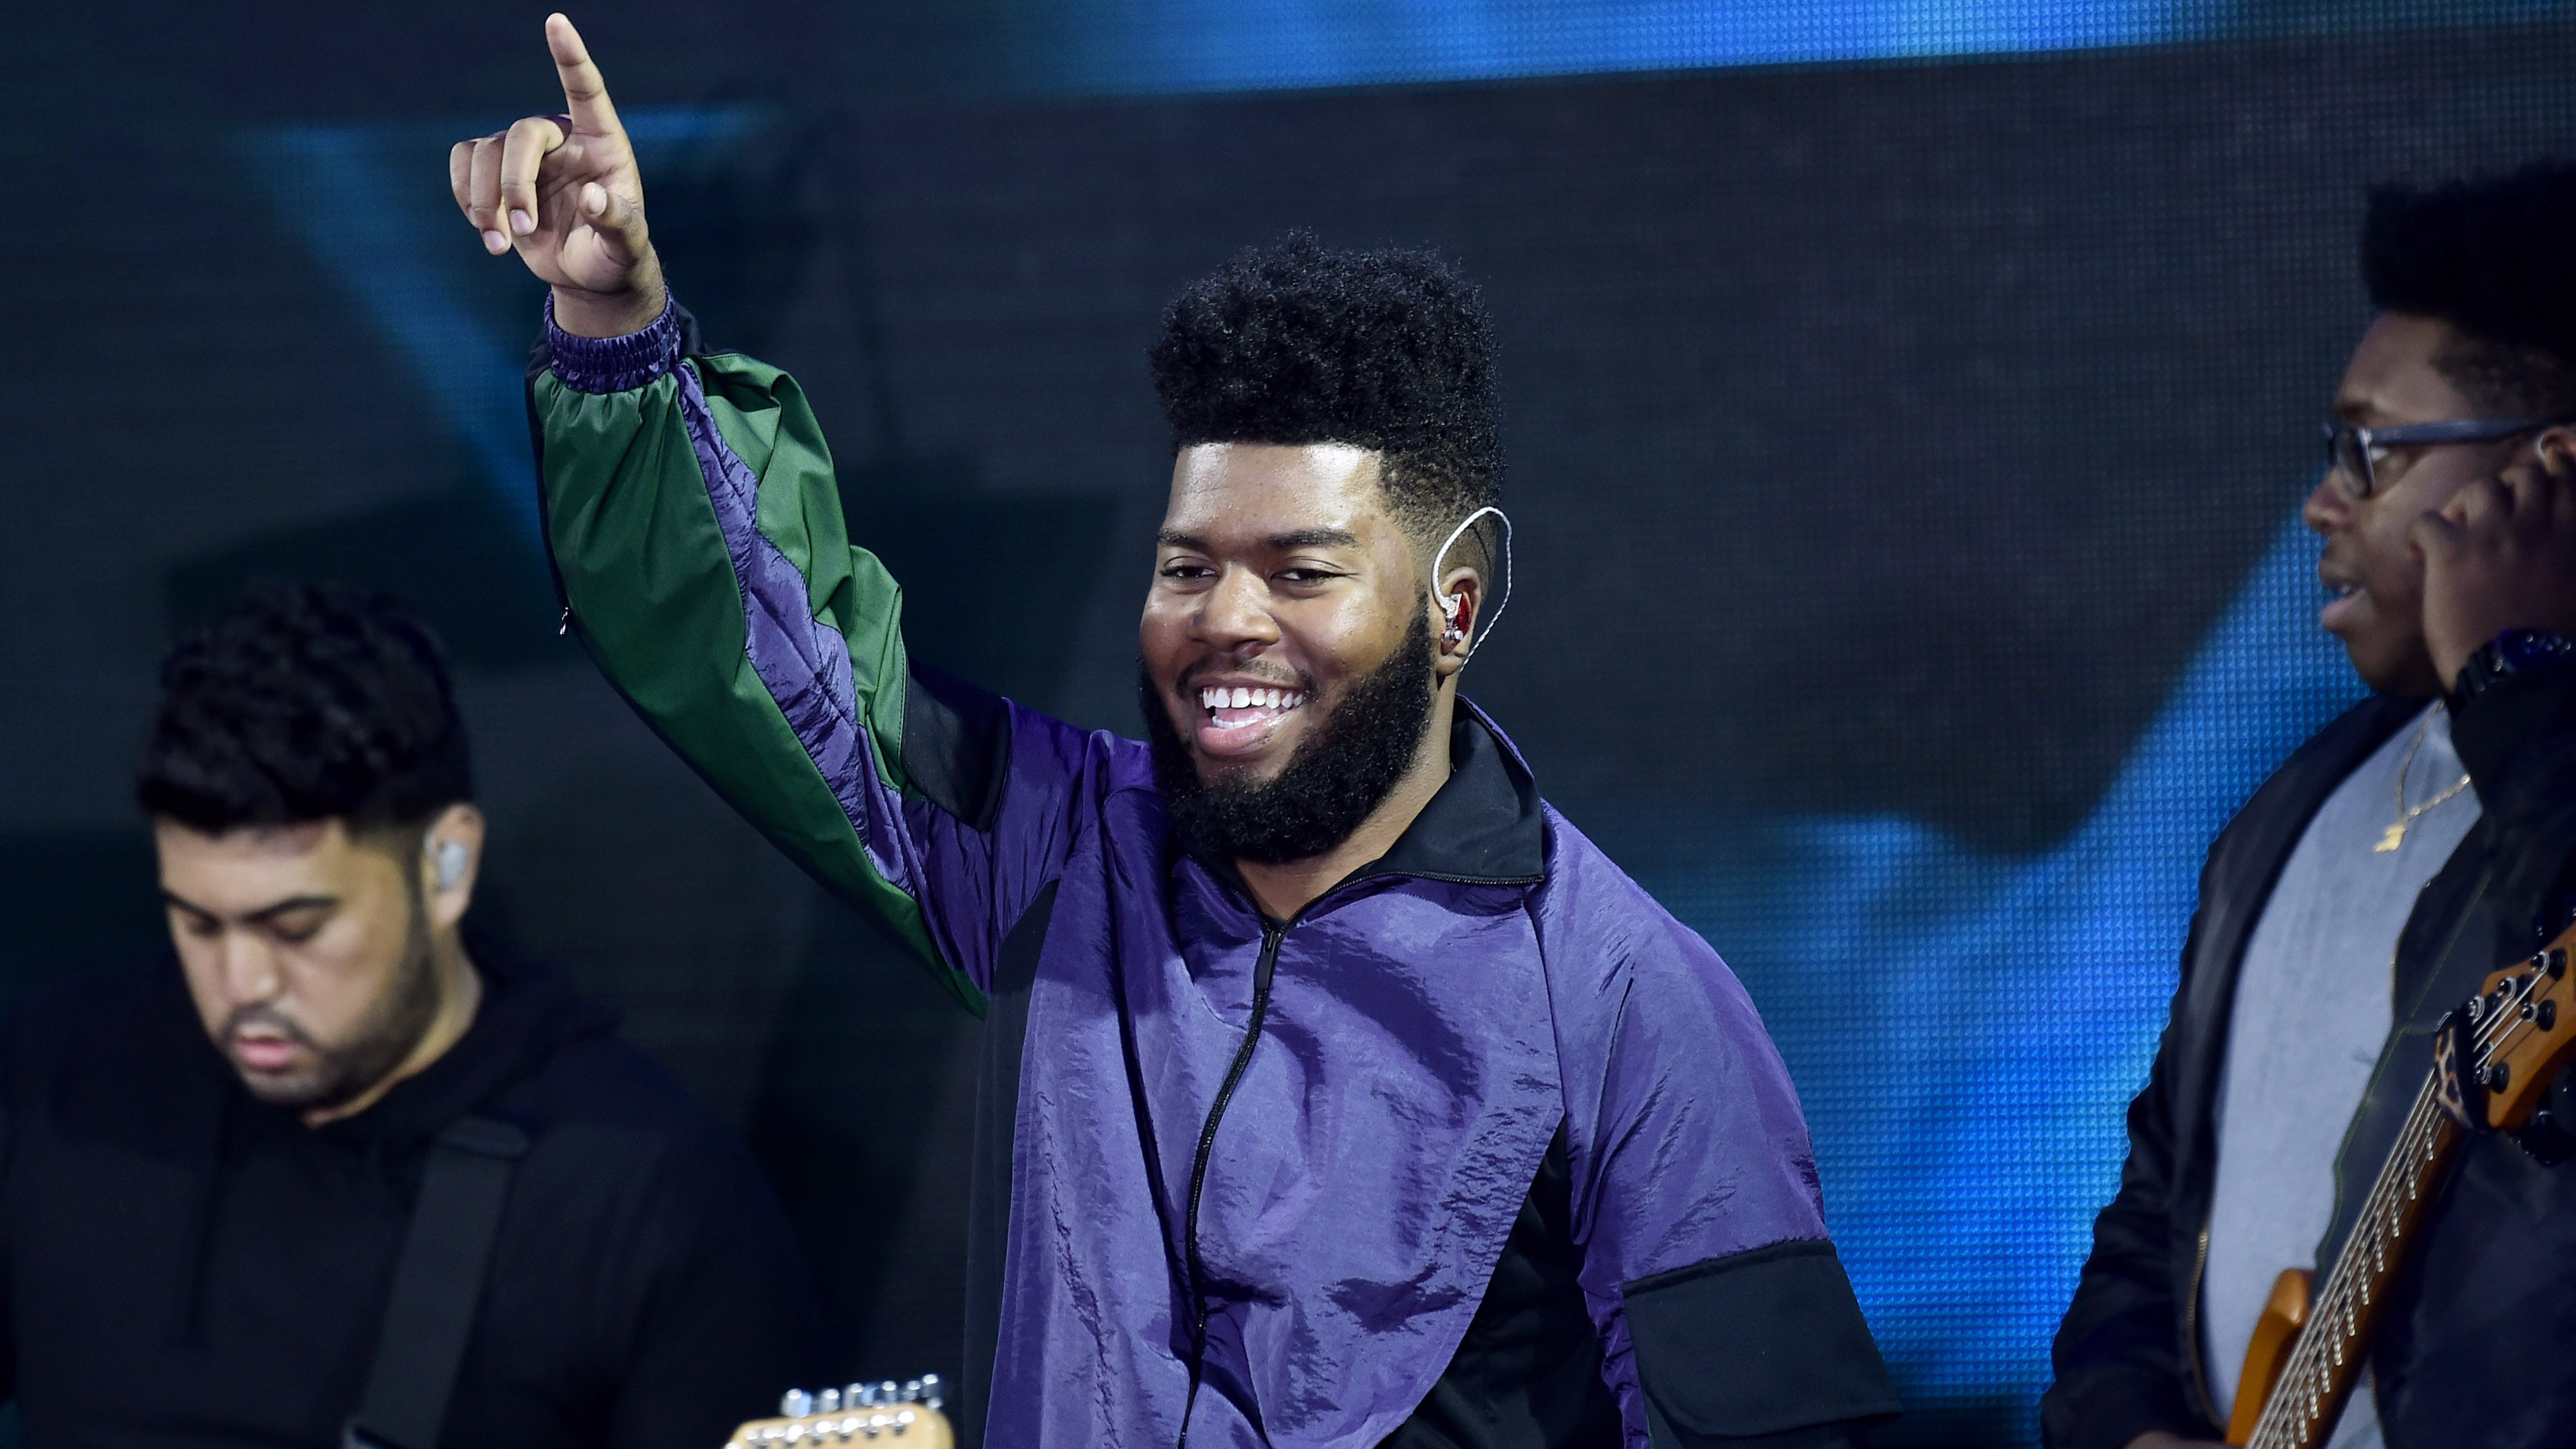 Singer Khalid's Dream Was To Go To The Grammys, Now He's Got Five Nominations